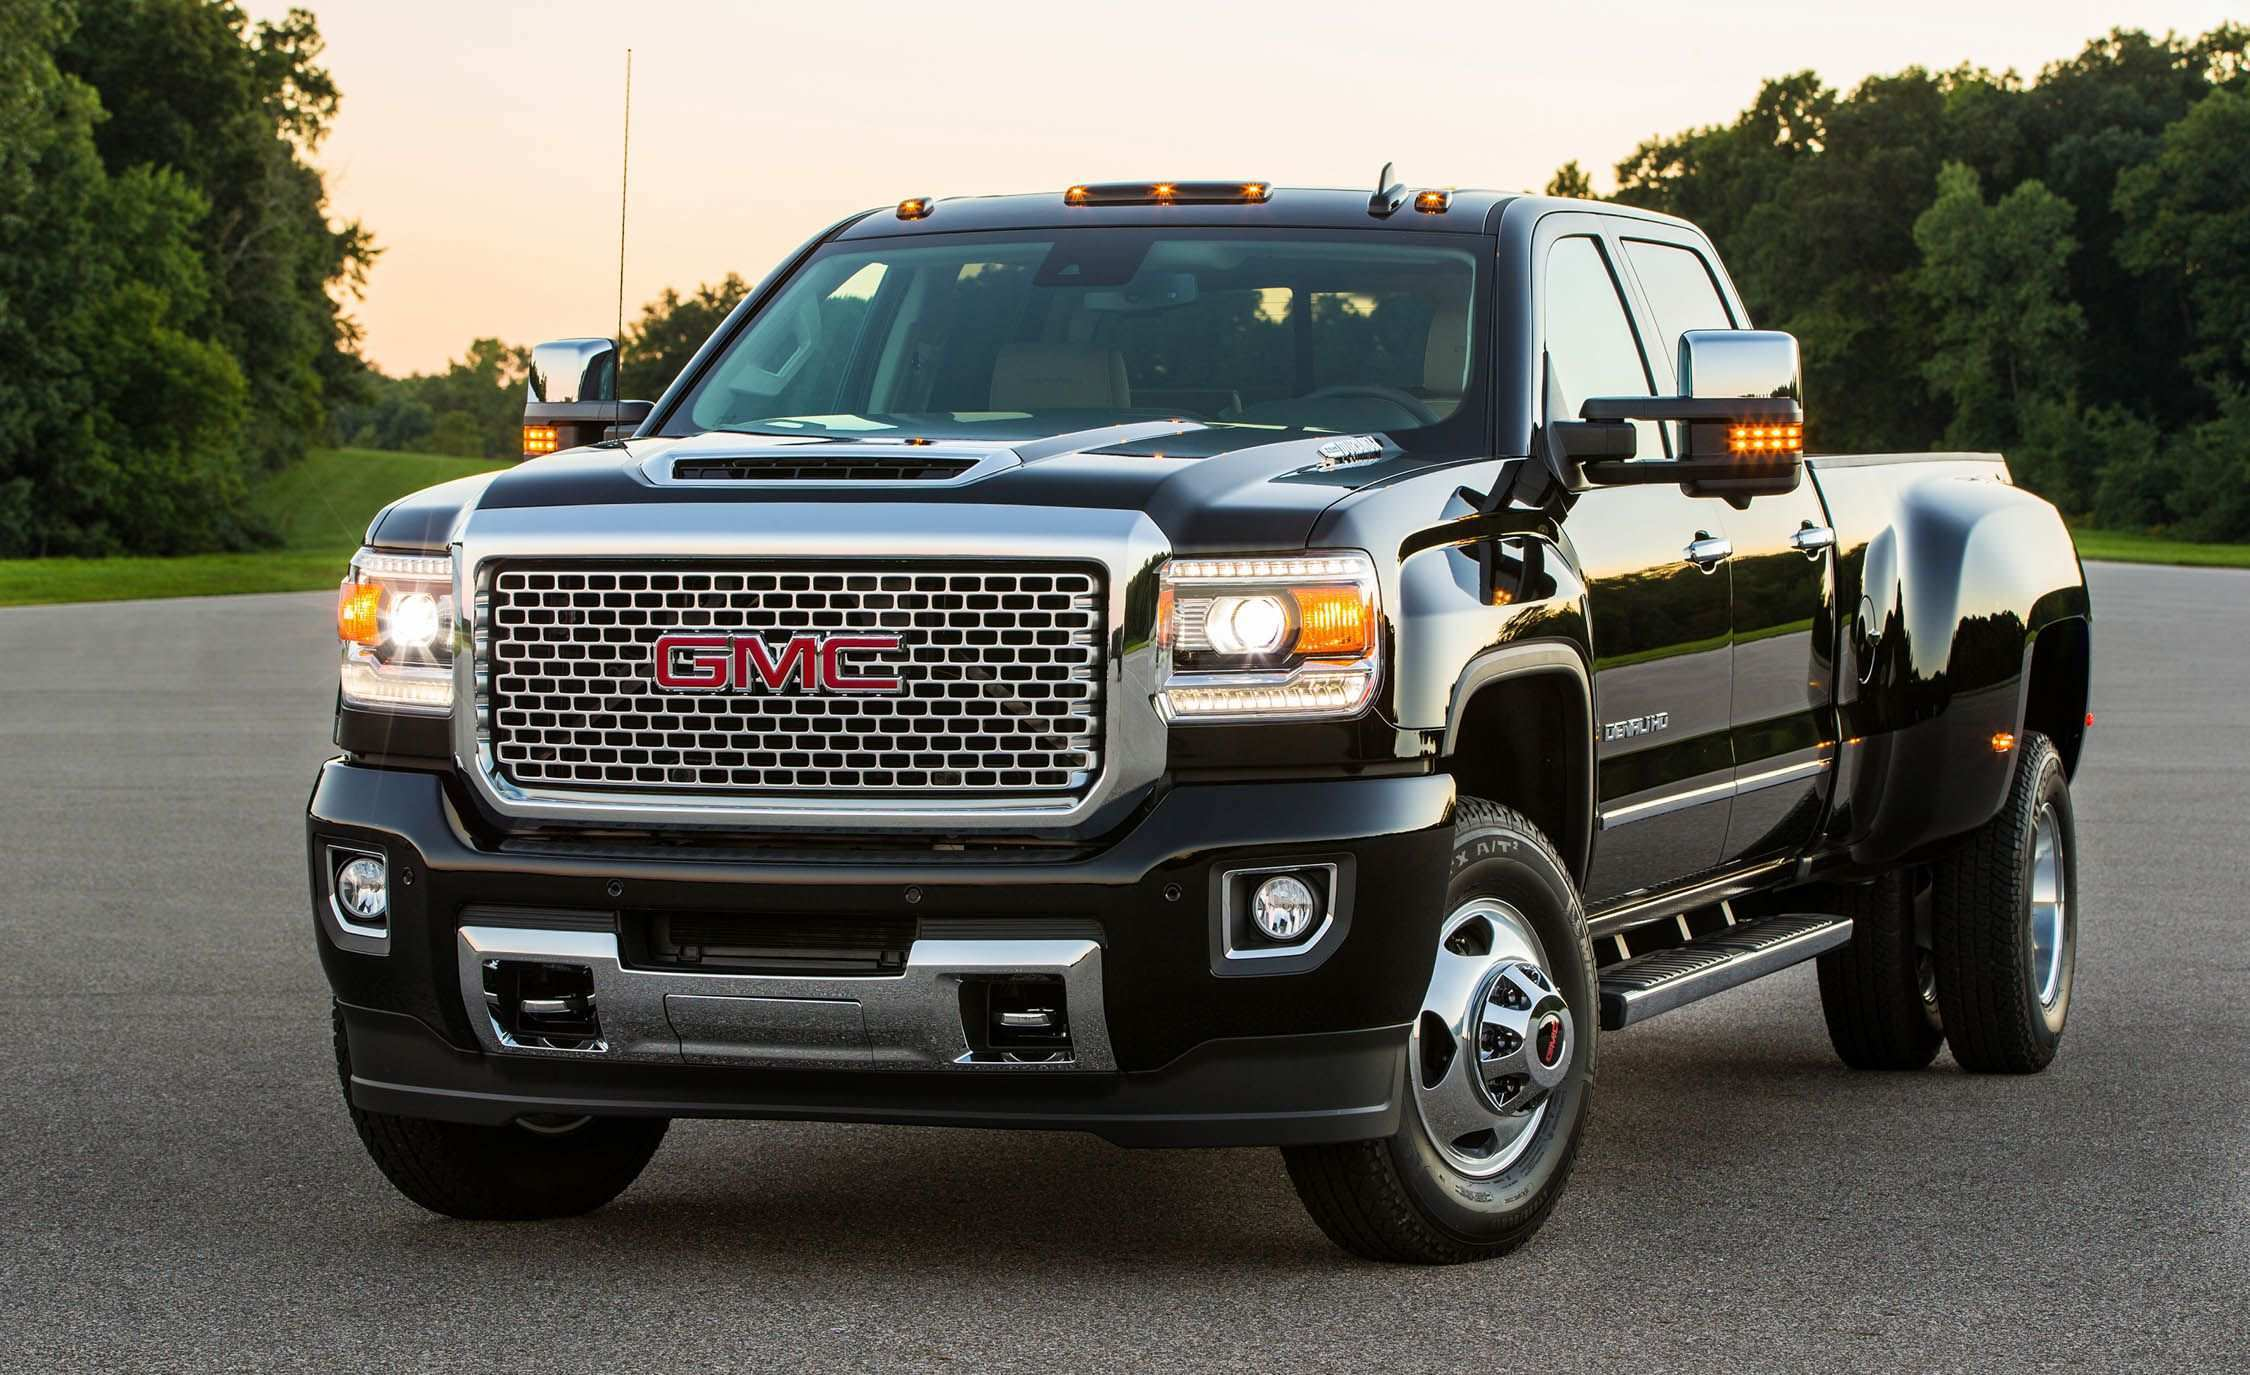 57 Concept of 2019 Gmc 3500 Duramax Rumors for 2019 Gmc 3500 Duramax